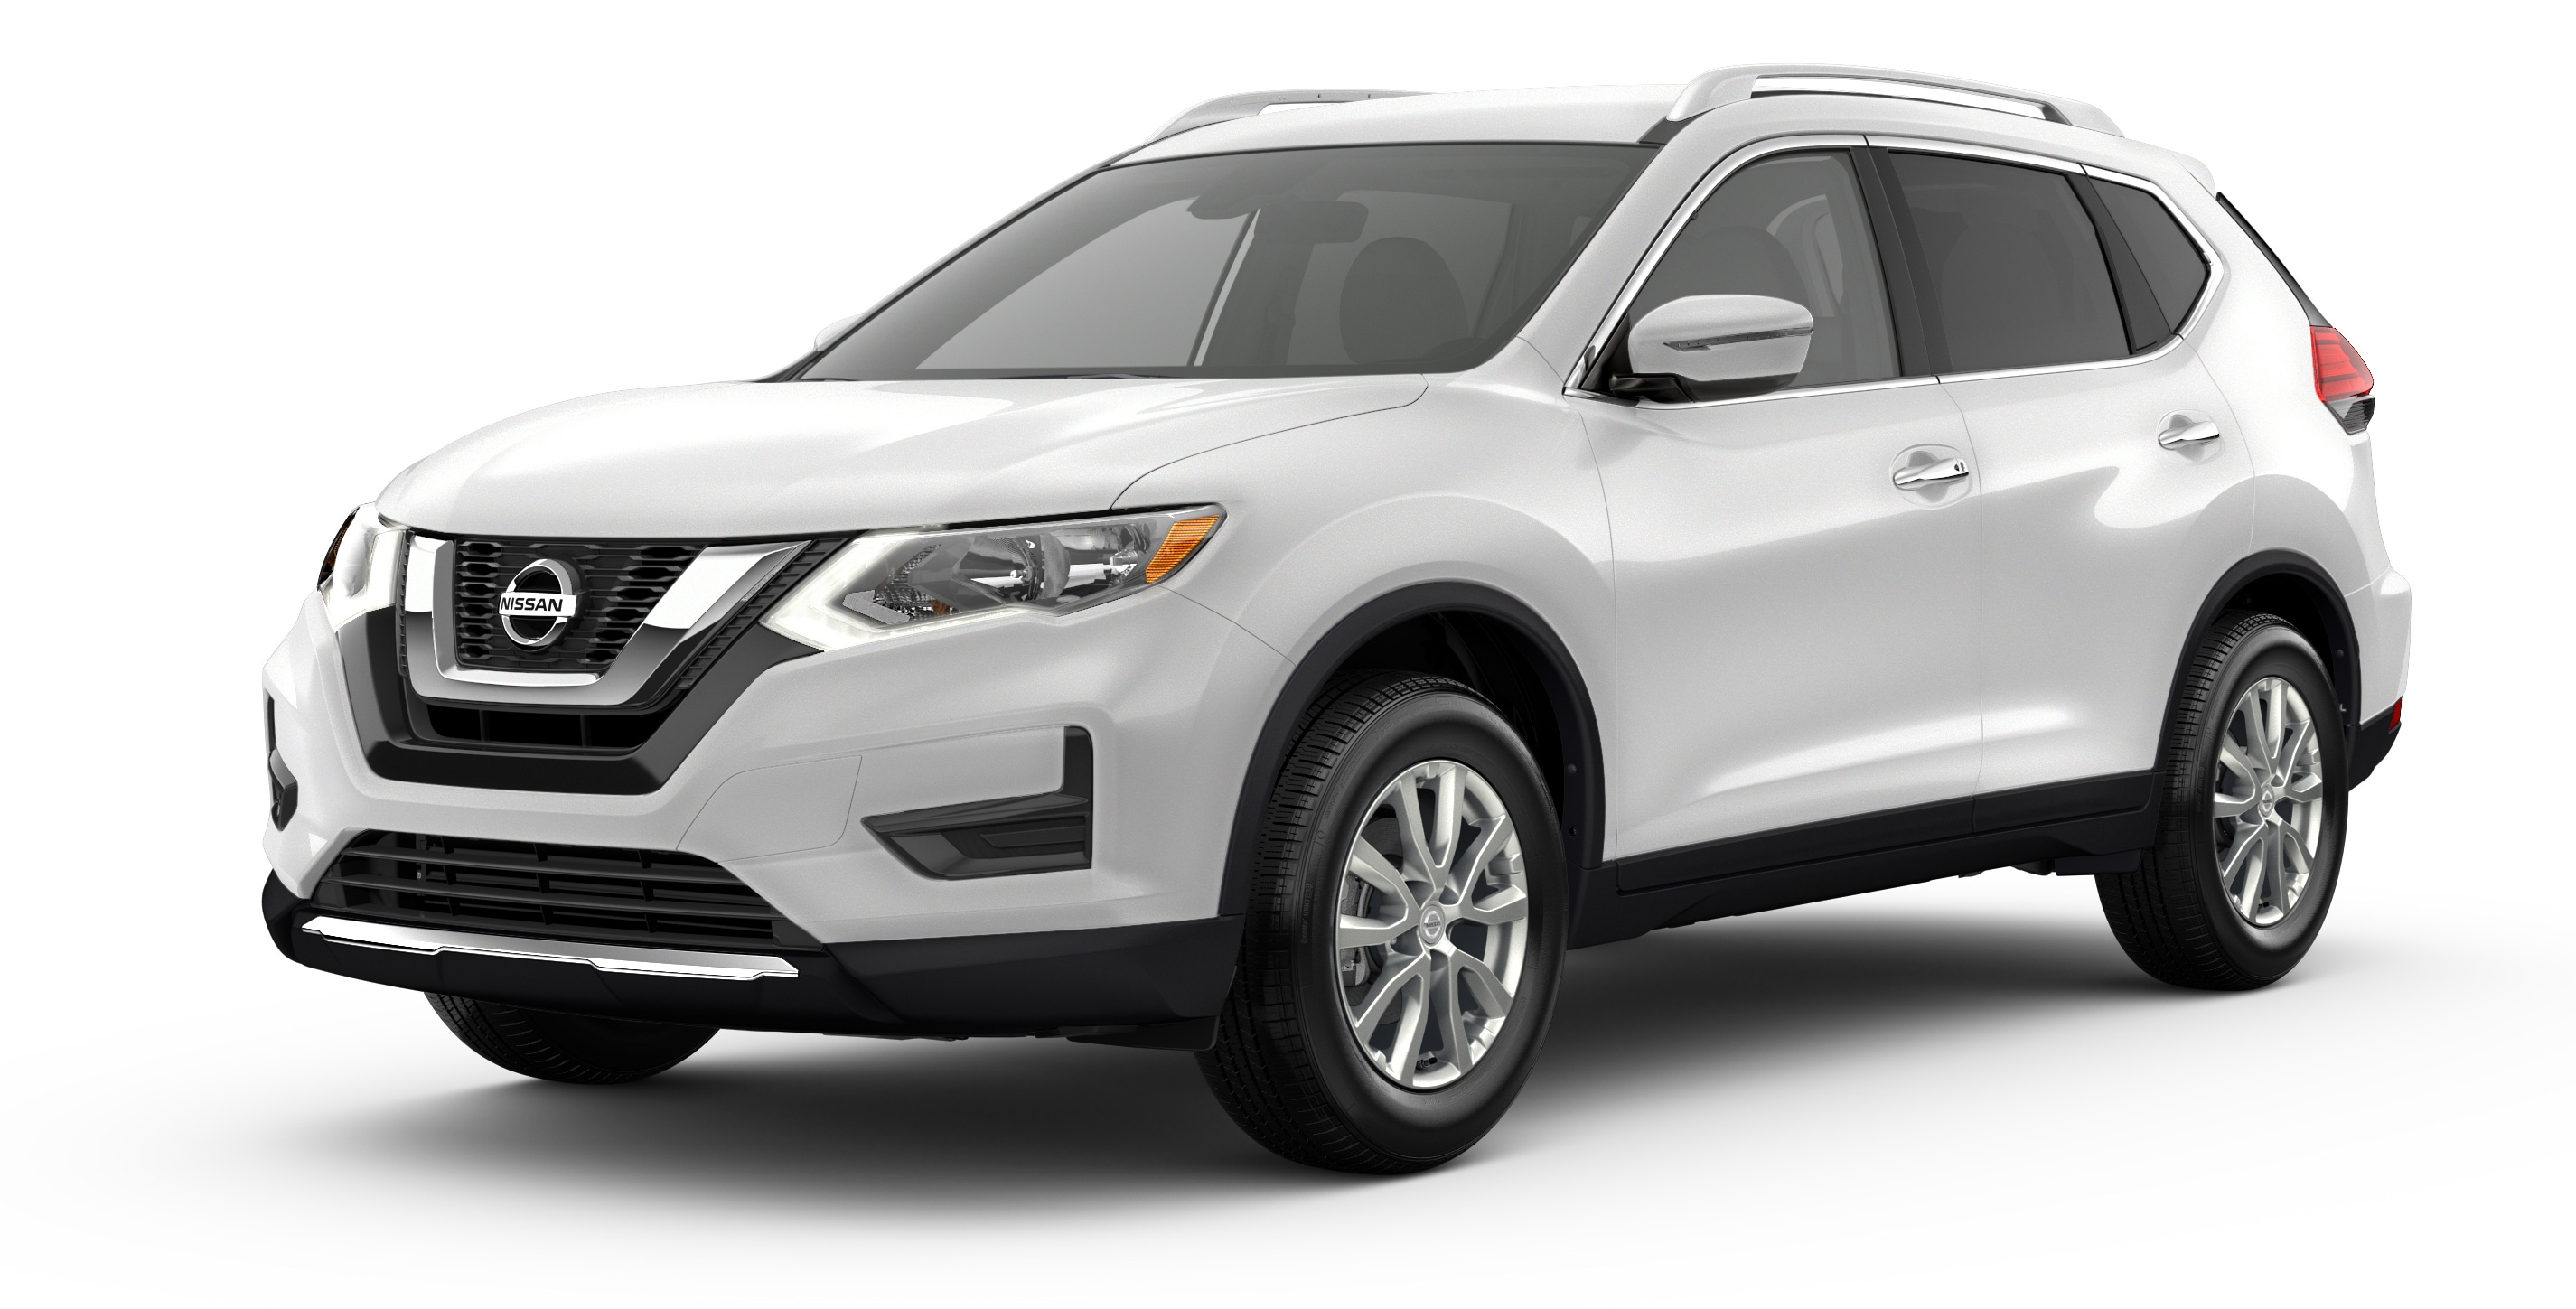 of price for suv edition selling nissan pathfinder money midnight cars hot story boosts